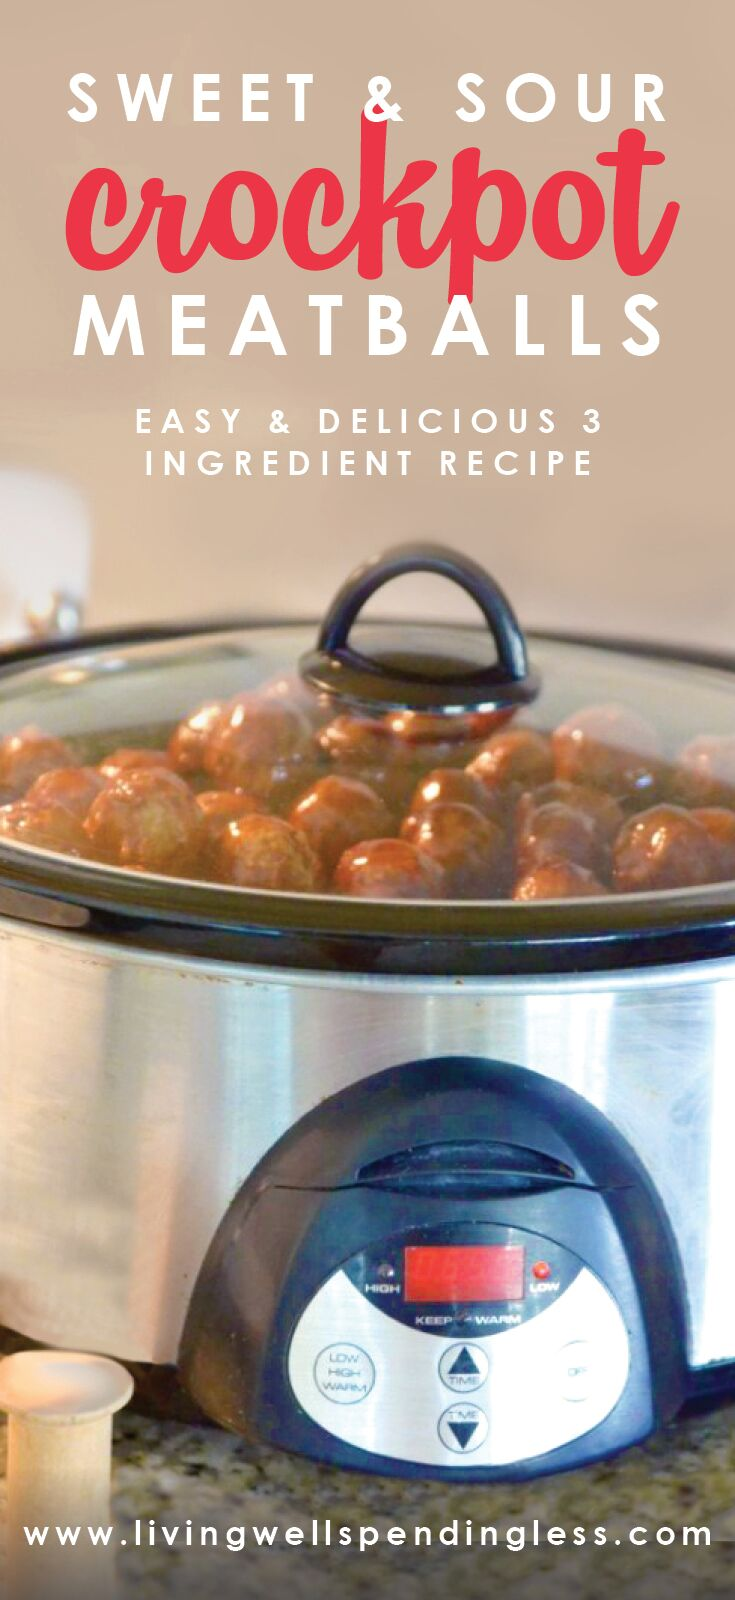 Sweet & Sour Crockpot Meatballs: an easy and delicious three-ingredient recipe. So easy to make for your next party!